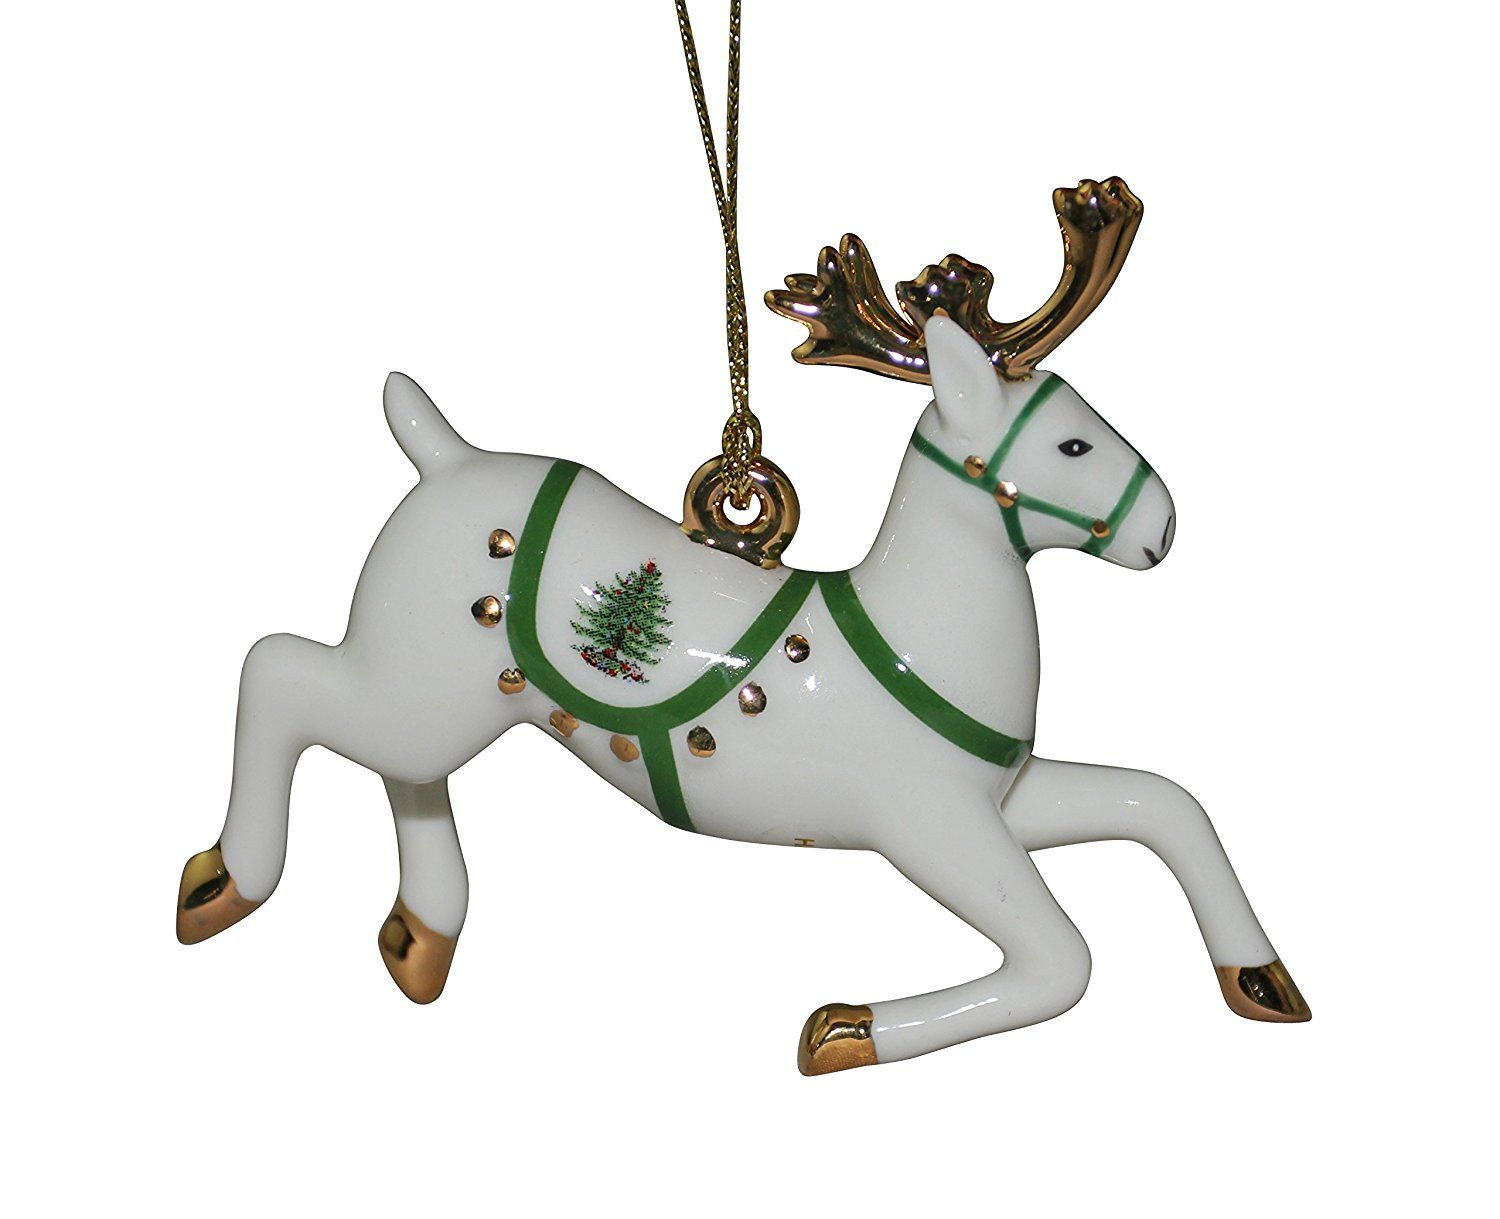 Spode Christmas Tree Ornament, Reindeer > SPECIAL OFFER AHEAD! : Christmas Ornaments